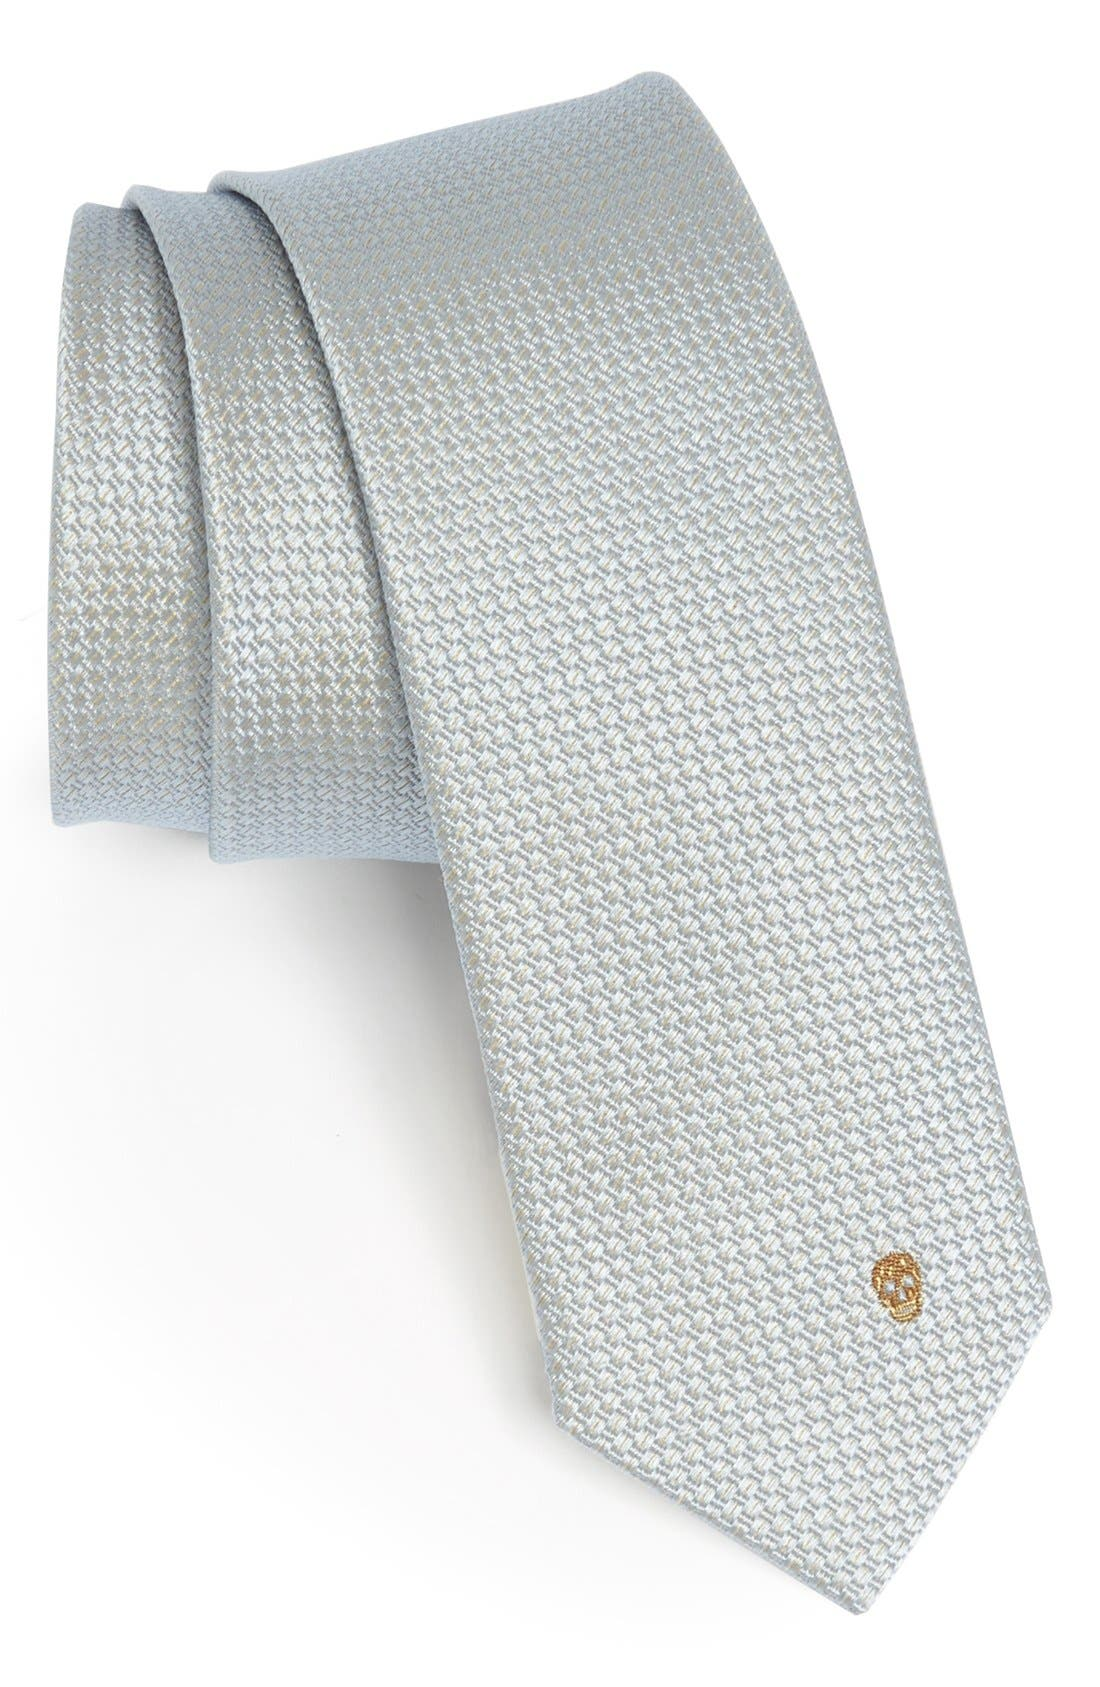 Alternate Image 1 Selected - Alexander McQueen Woven Silk Tie